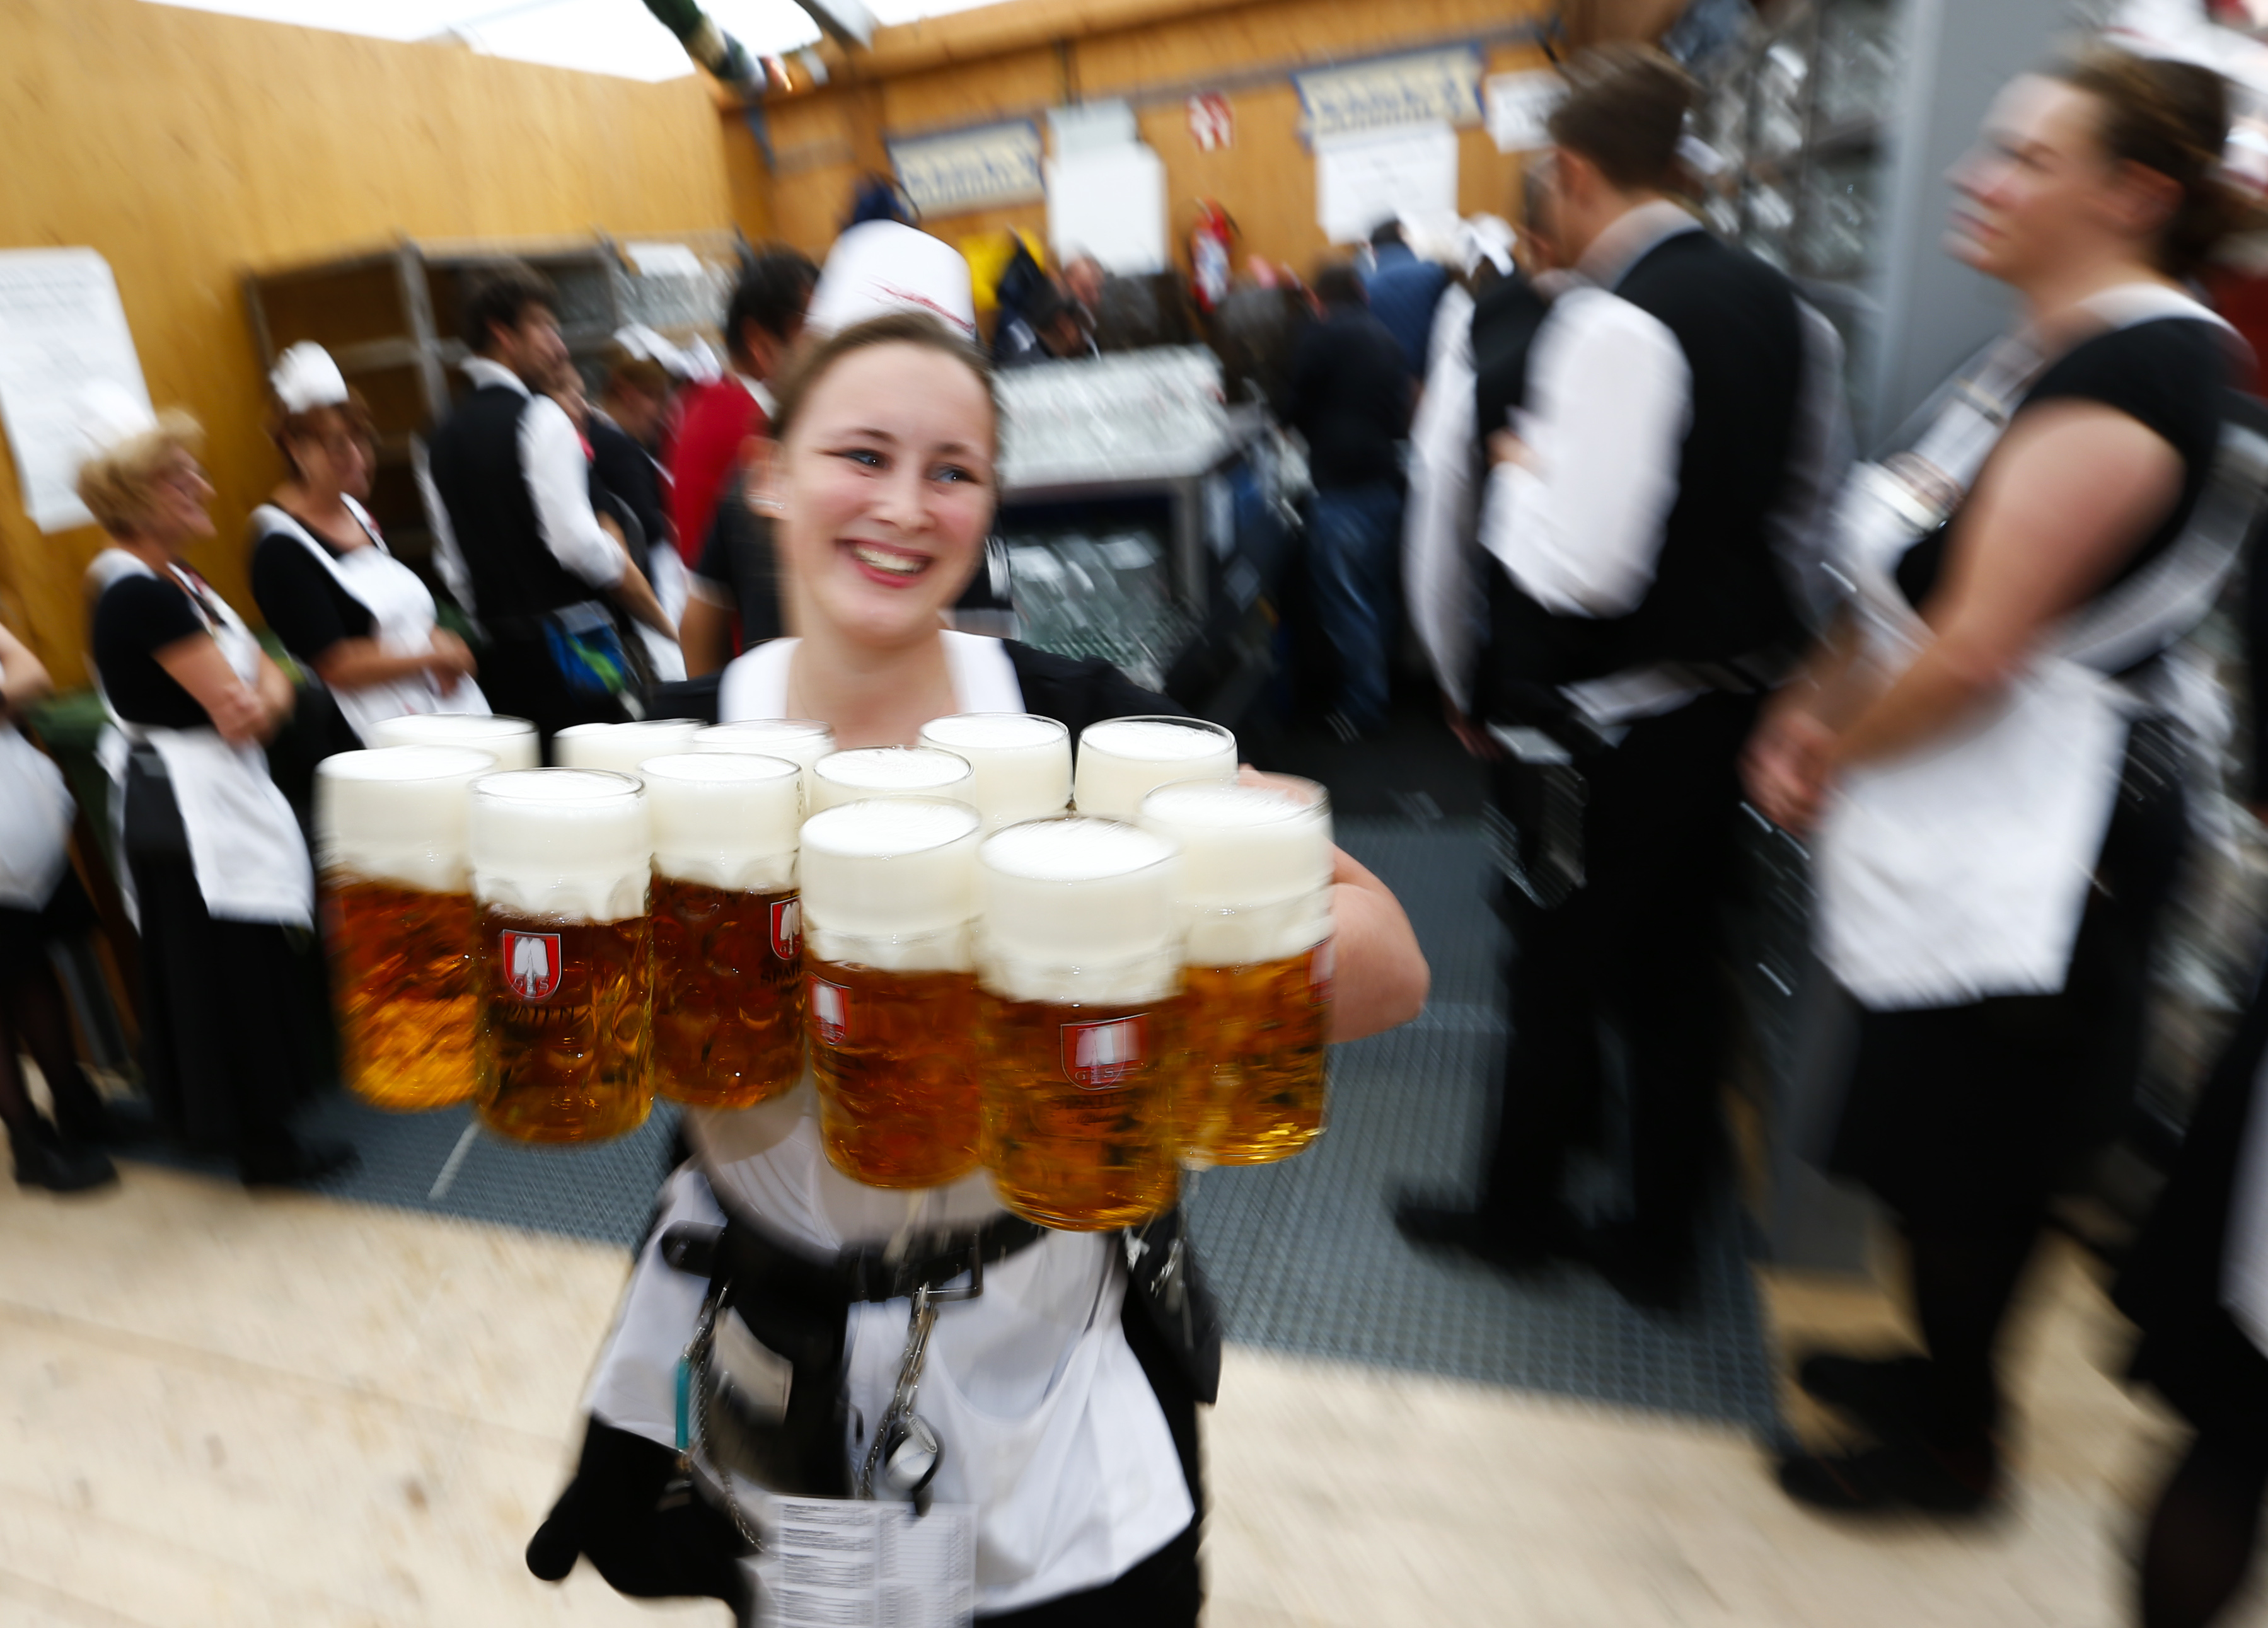 A waitress carries beer in a tent during the 182nd Oktoberfest in Munich, Germany, September 19, 2015. Photo by Michaela Rehle/Reuters.